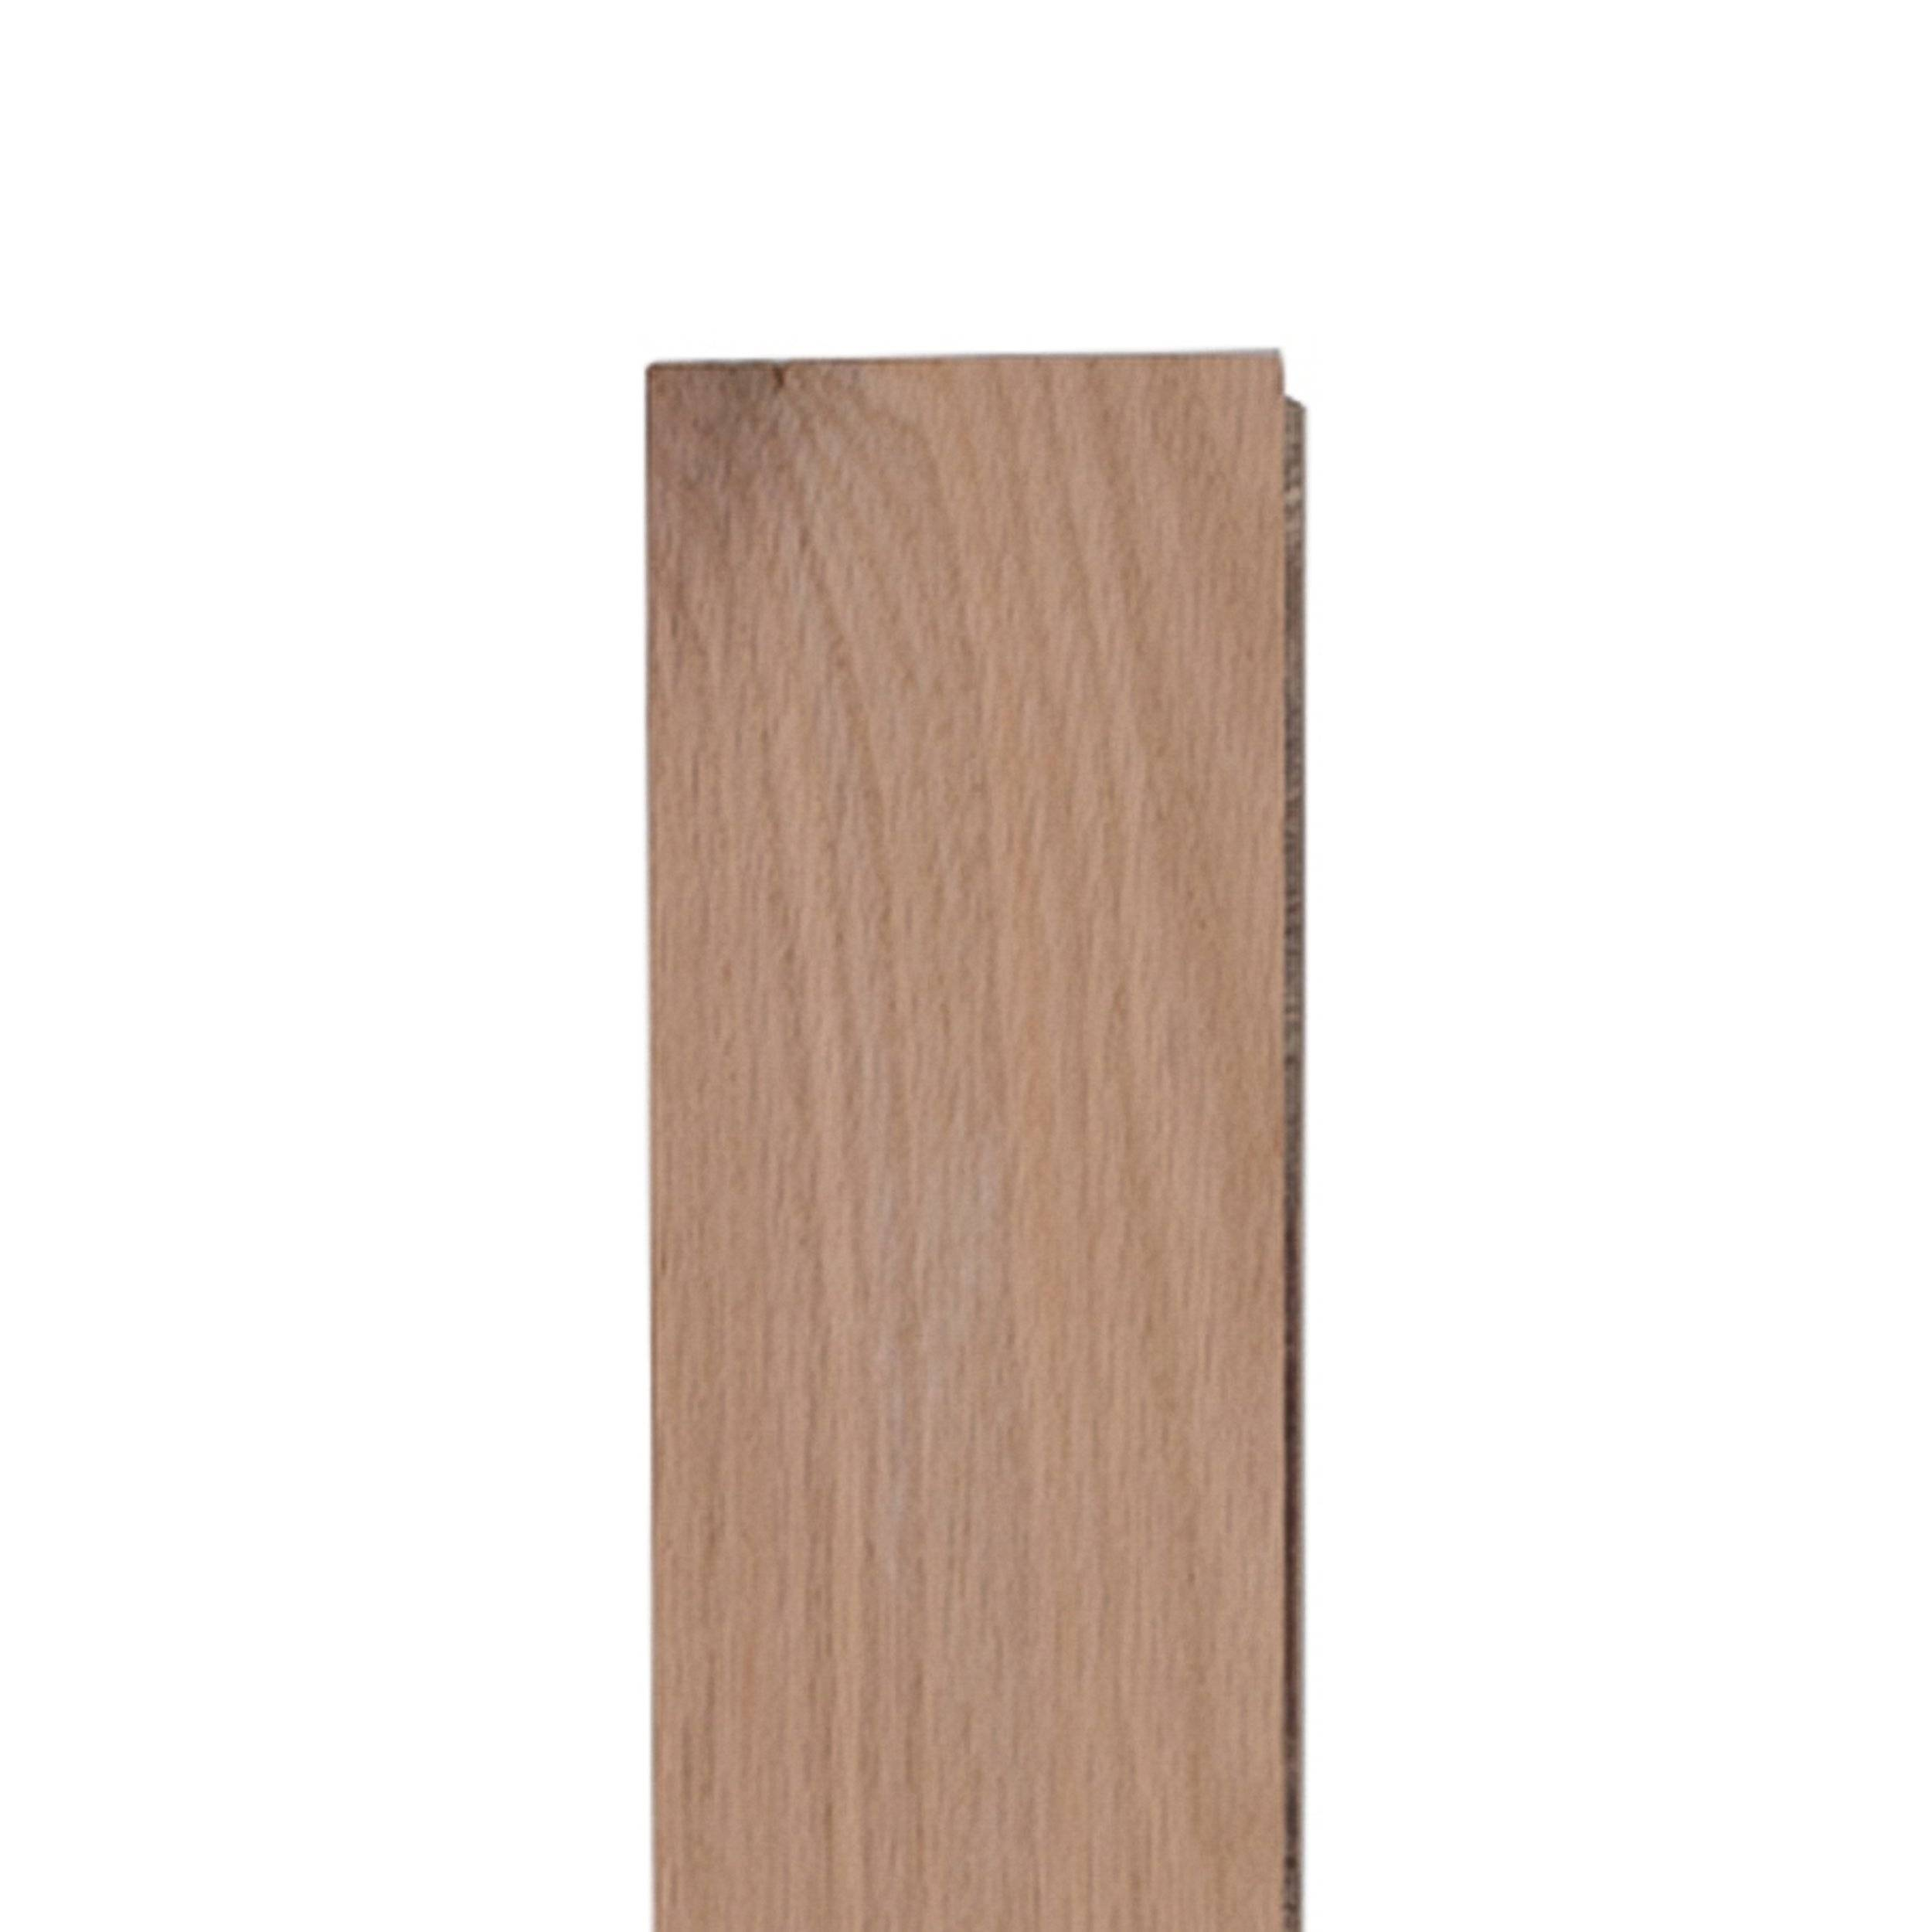 New! Unfinished Red Oak Engineered Hardwood Select Grade